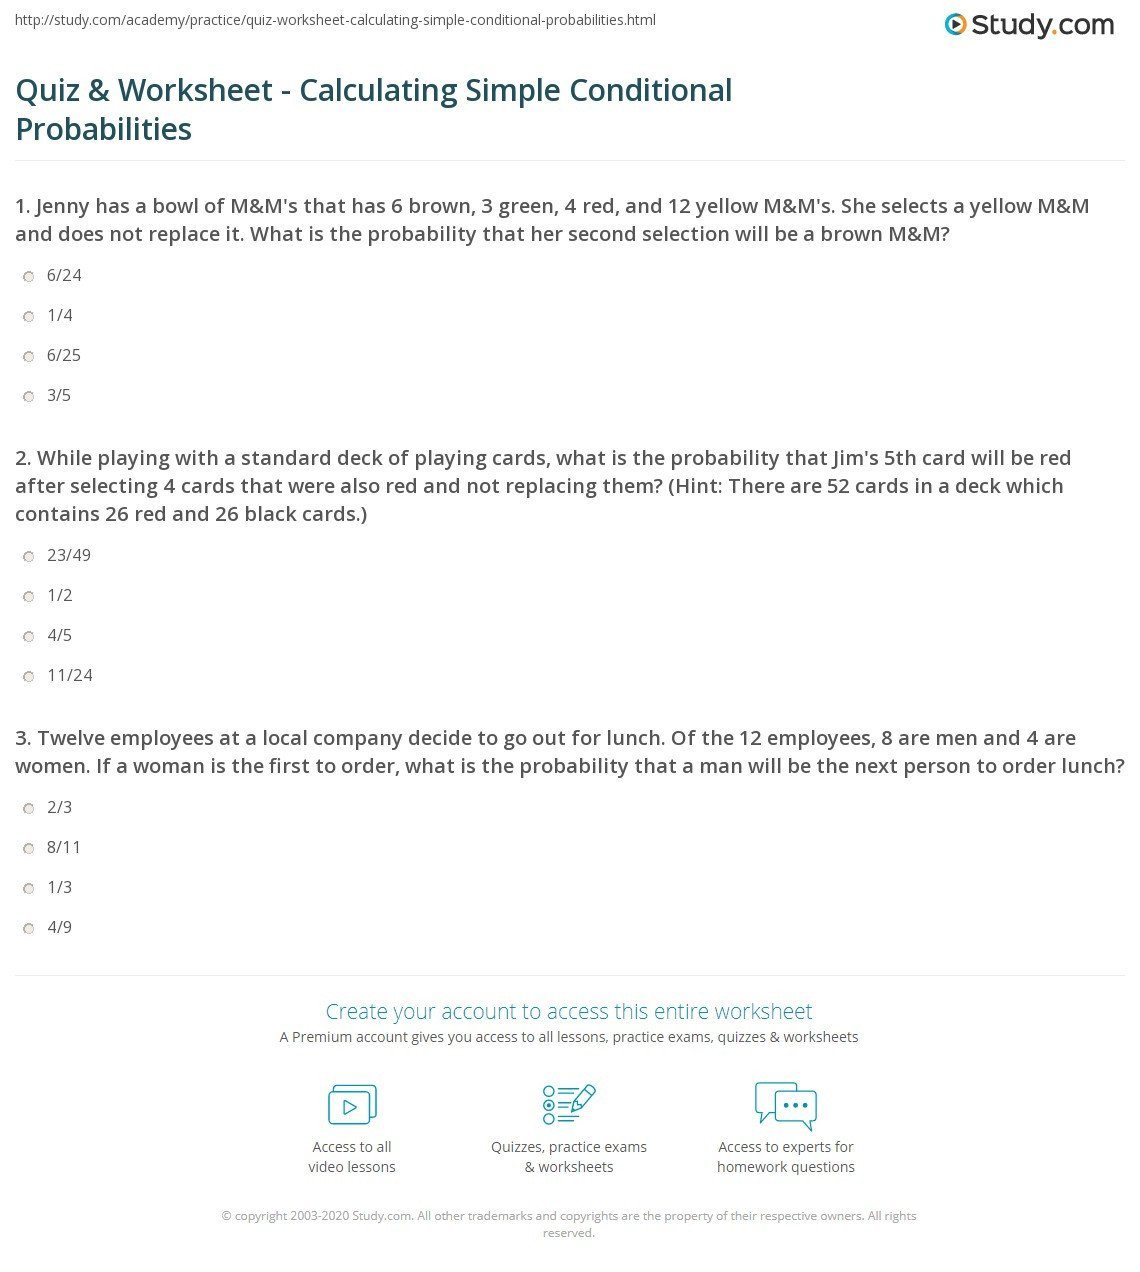 Simple and Compound Probability Worksheet Quiz & Worksheet Calculating Simple Conditional